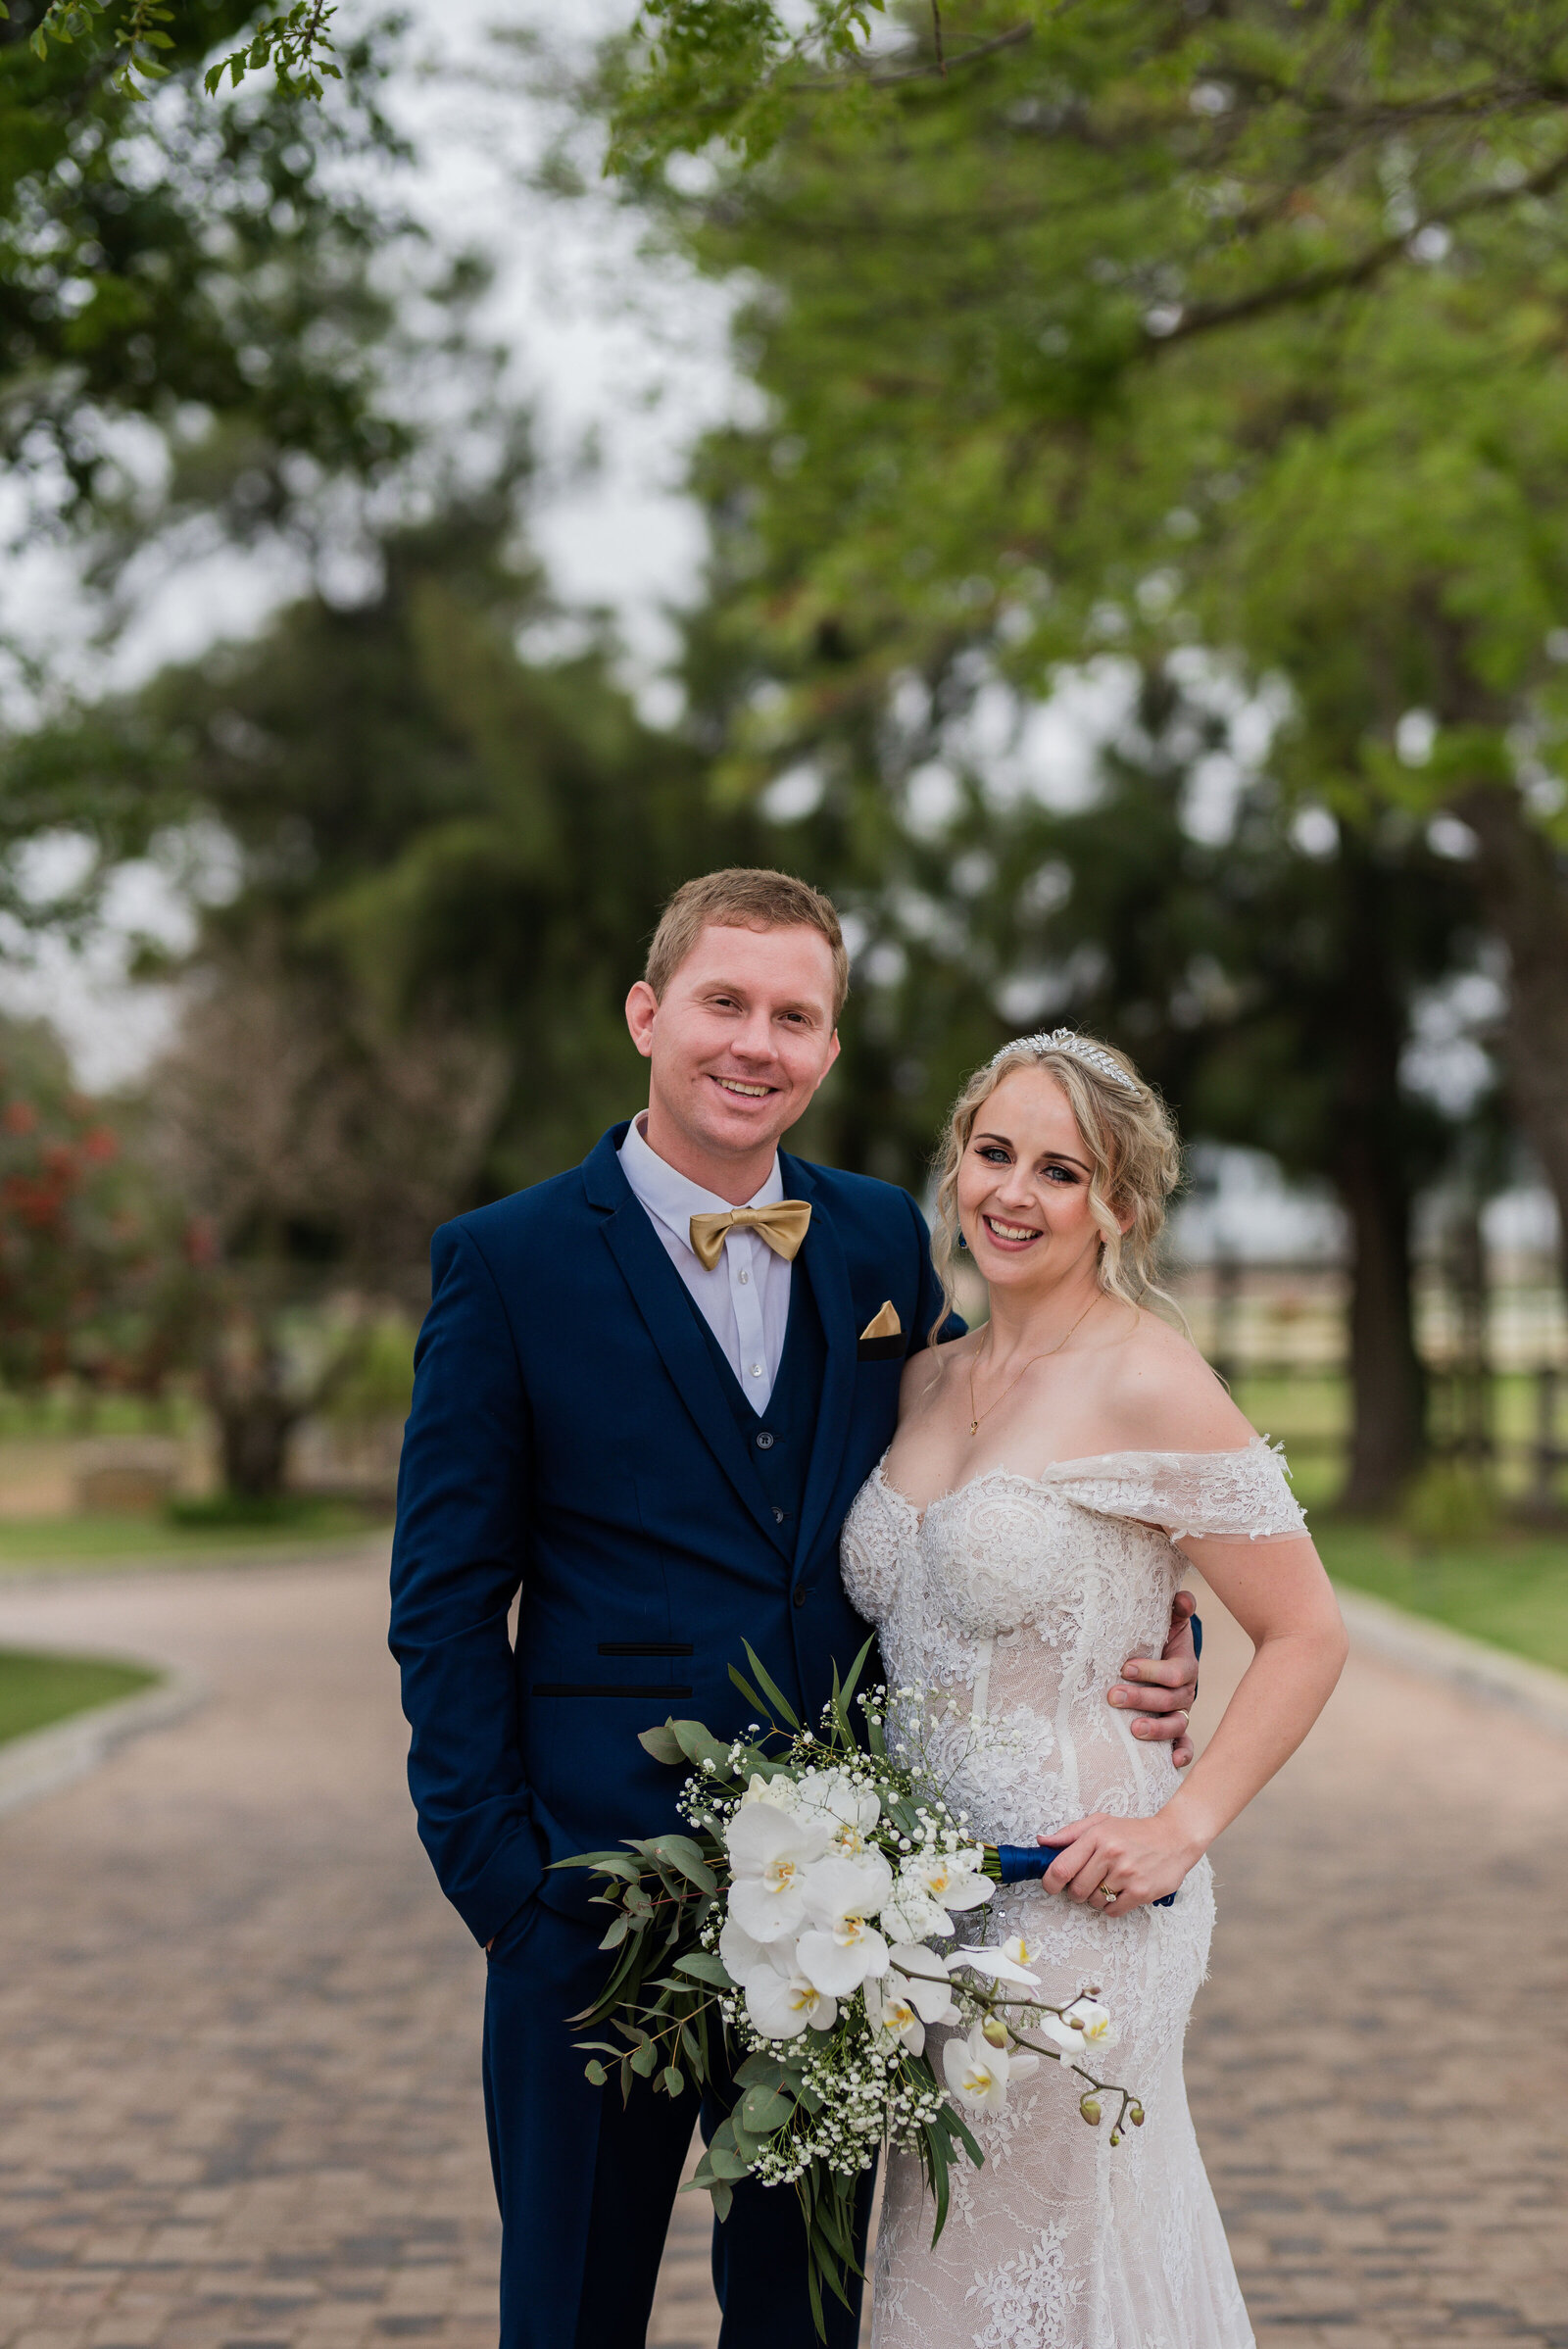 Wedding Photographer + Cape Town venue +Elri Photography+ Weddingdress (30)